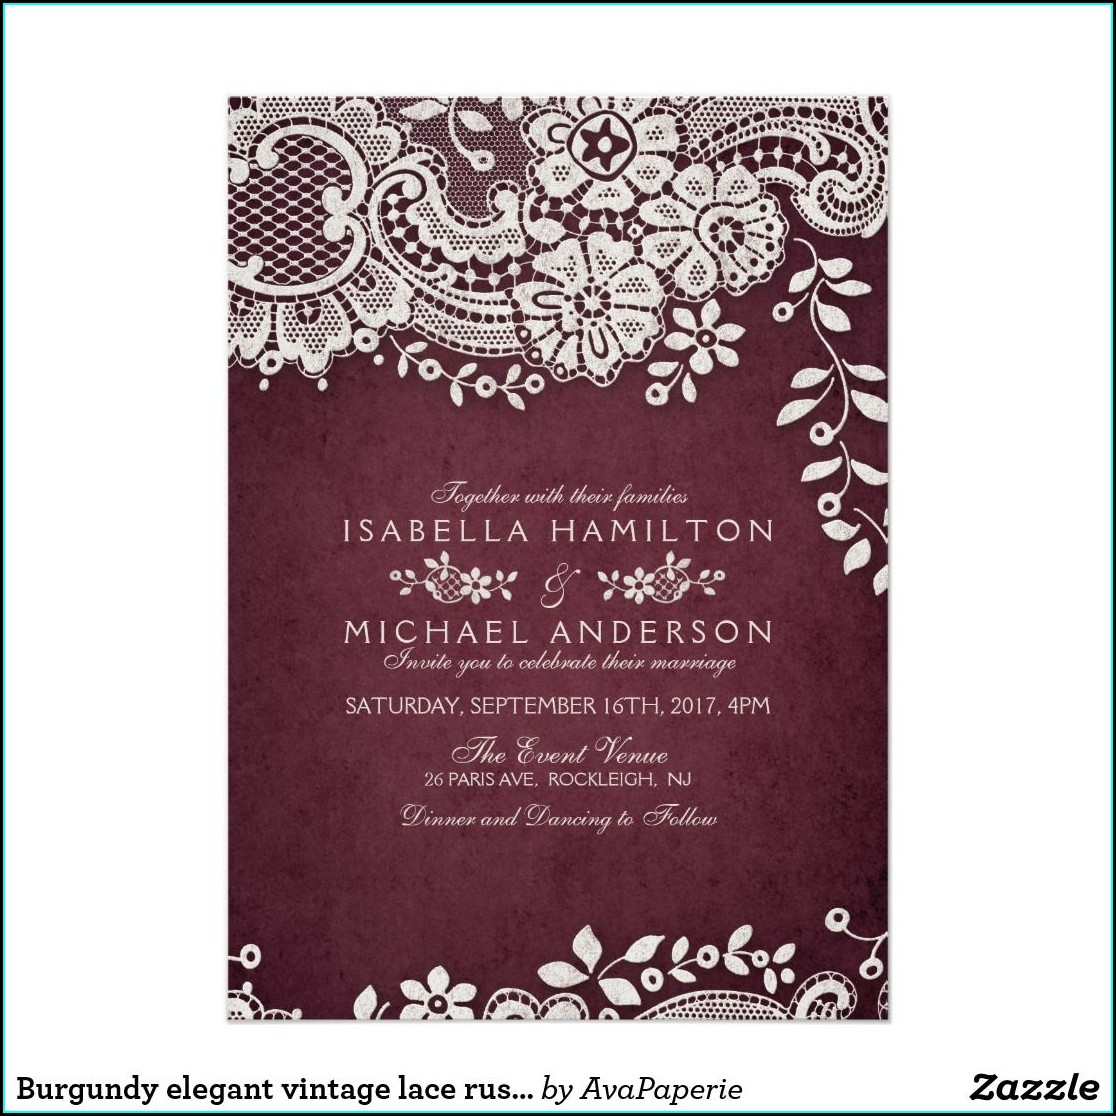 Zazzle Rustic Wedding Invitations